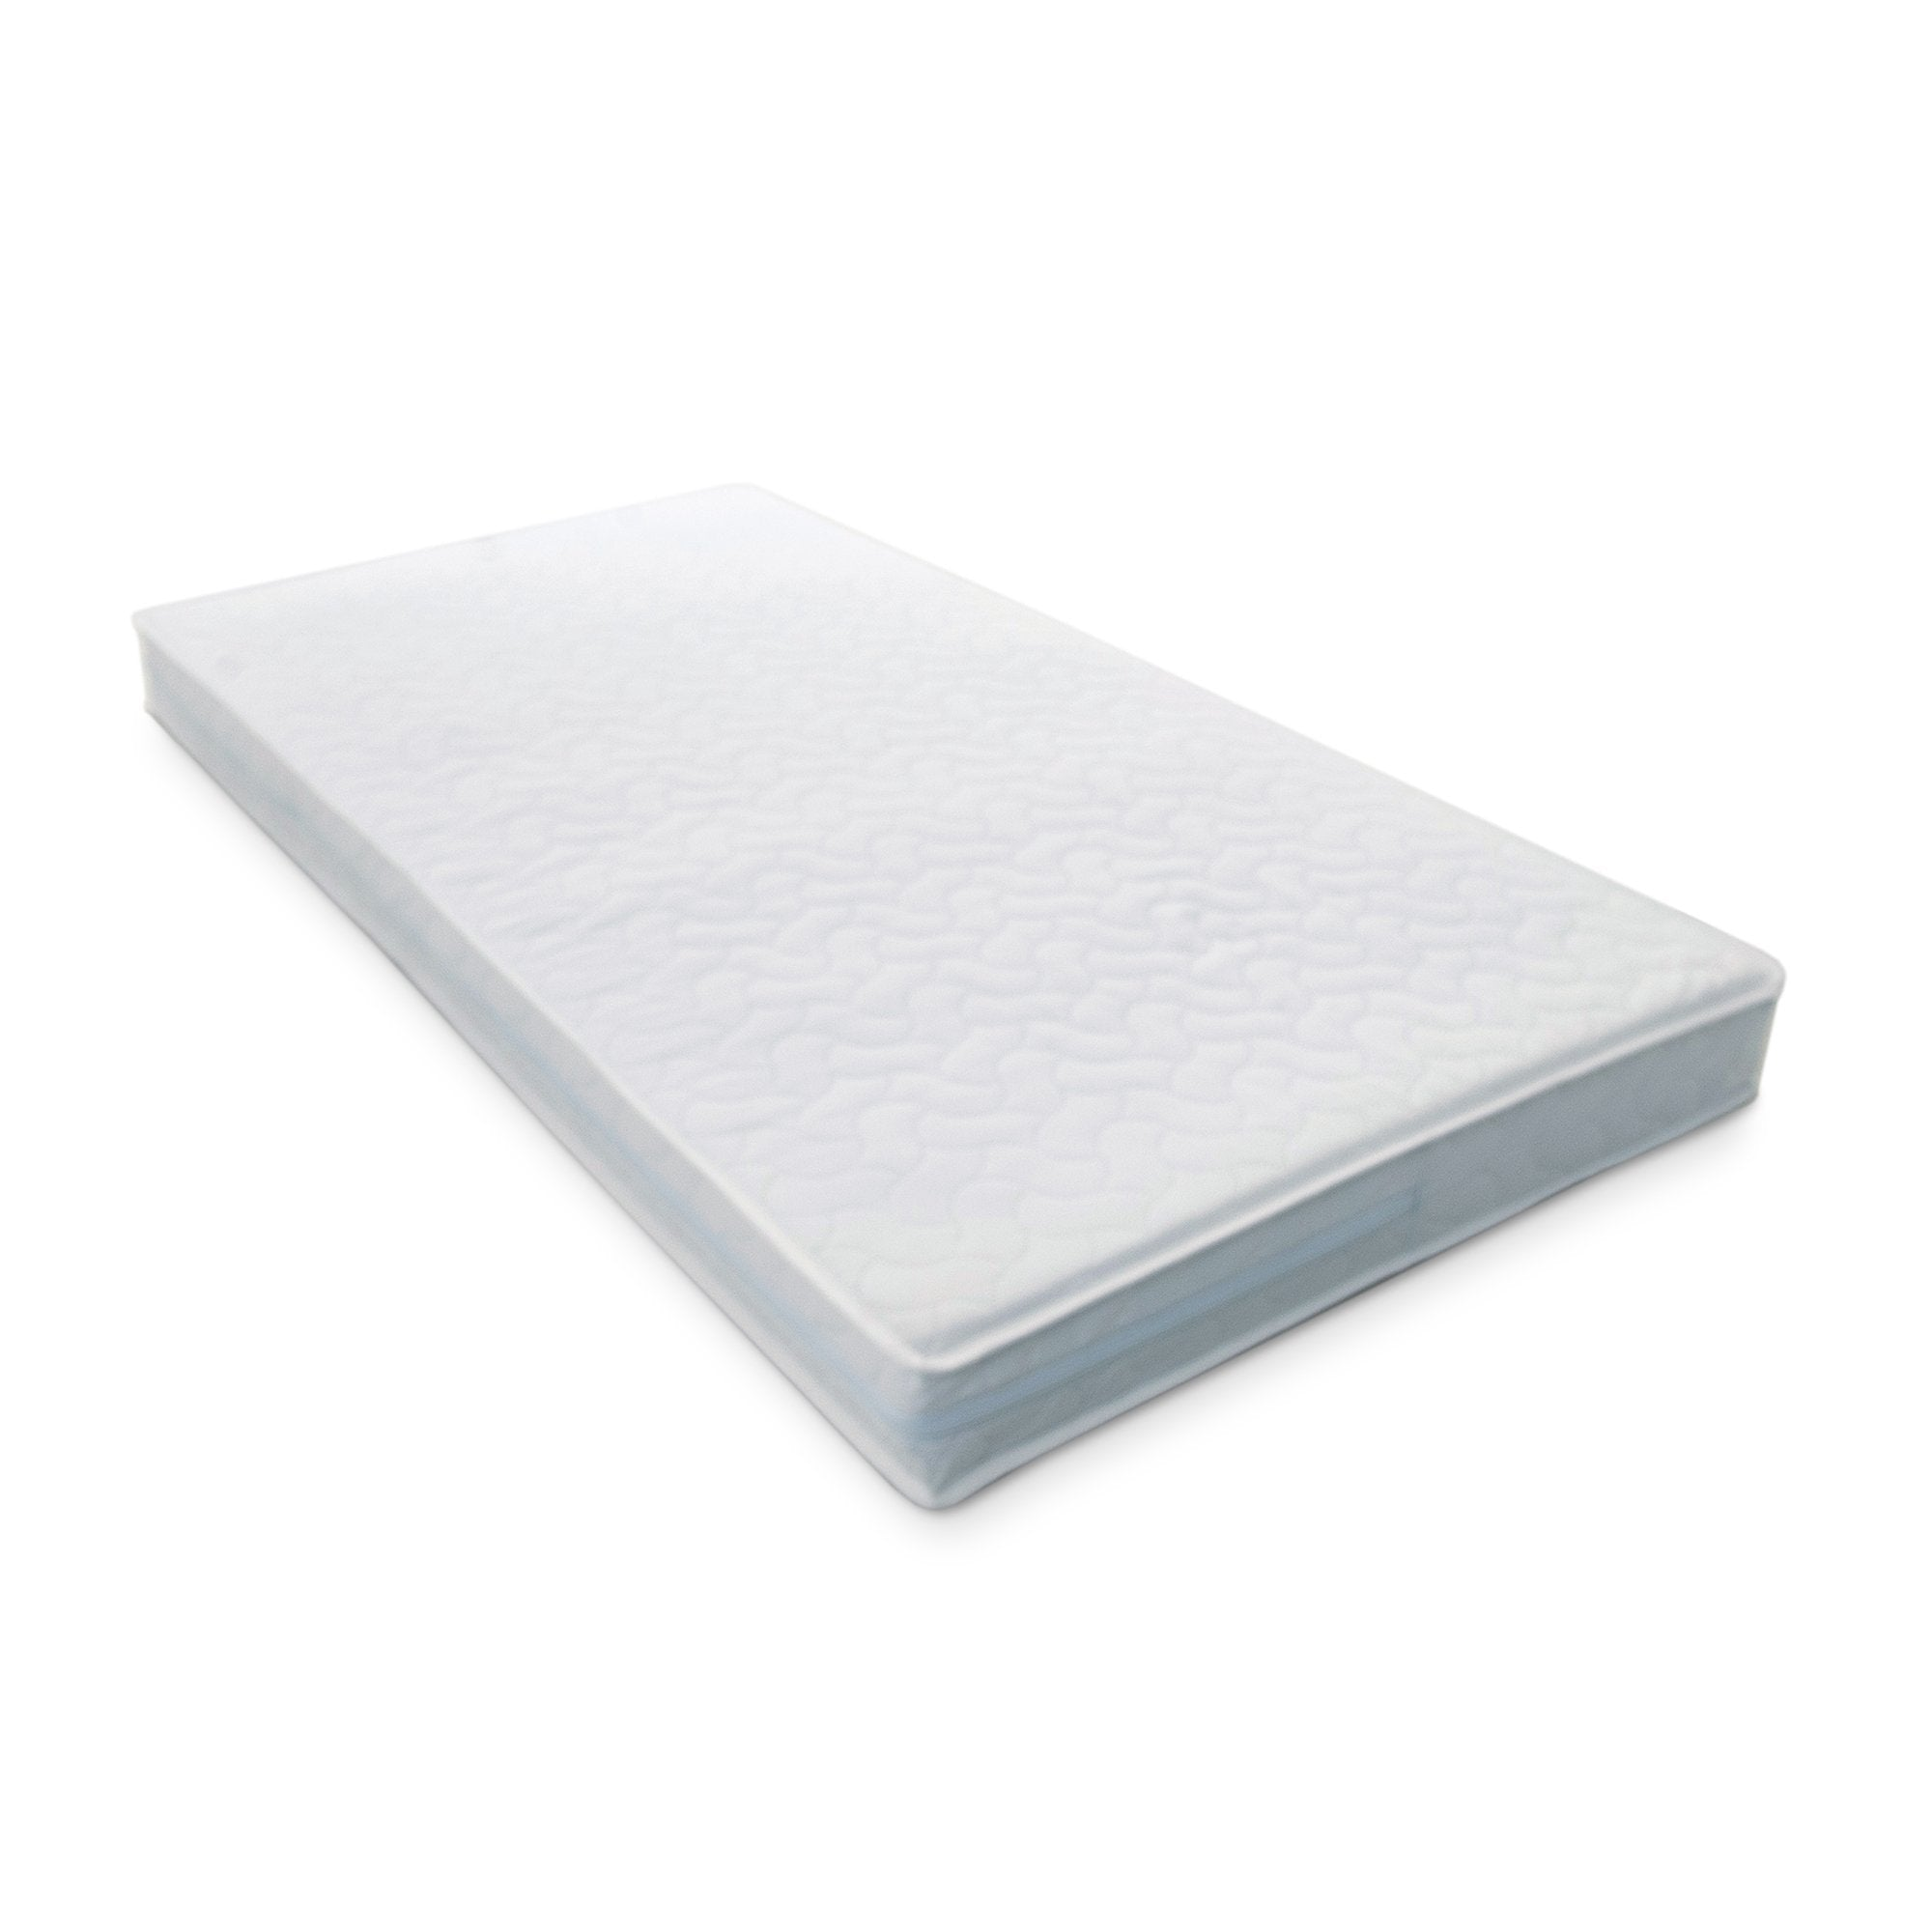 Ickle Bubba Sprung Cot Bed Mattress (140 x 70cm)